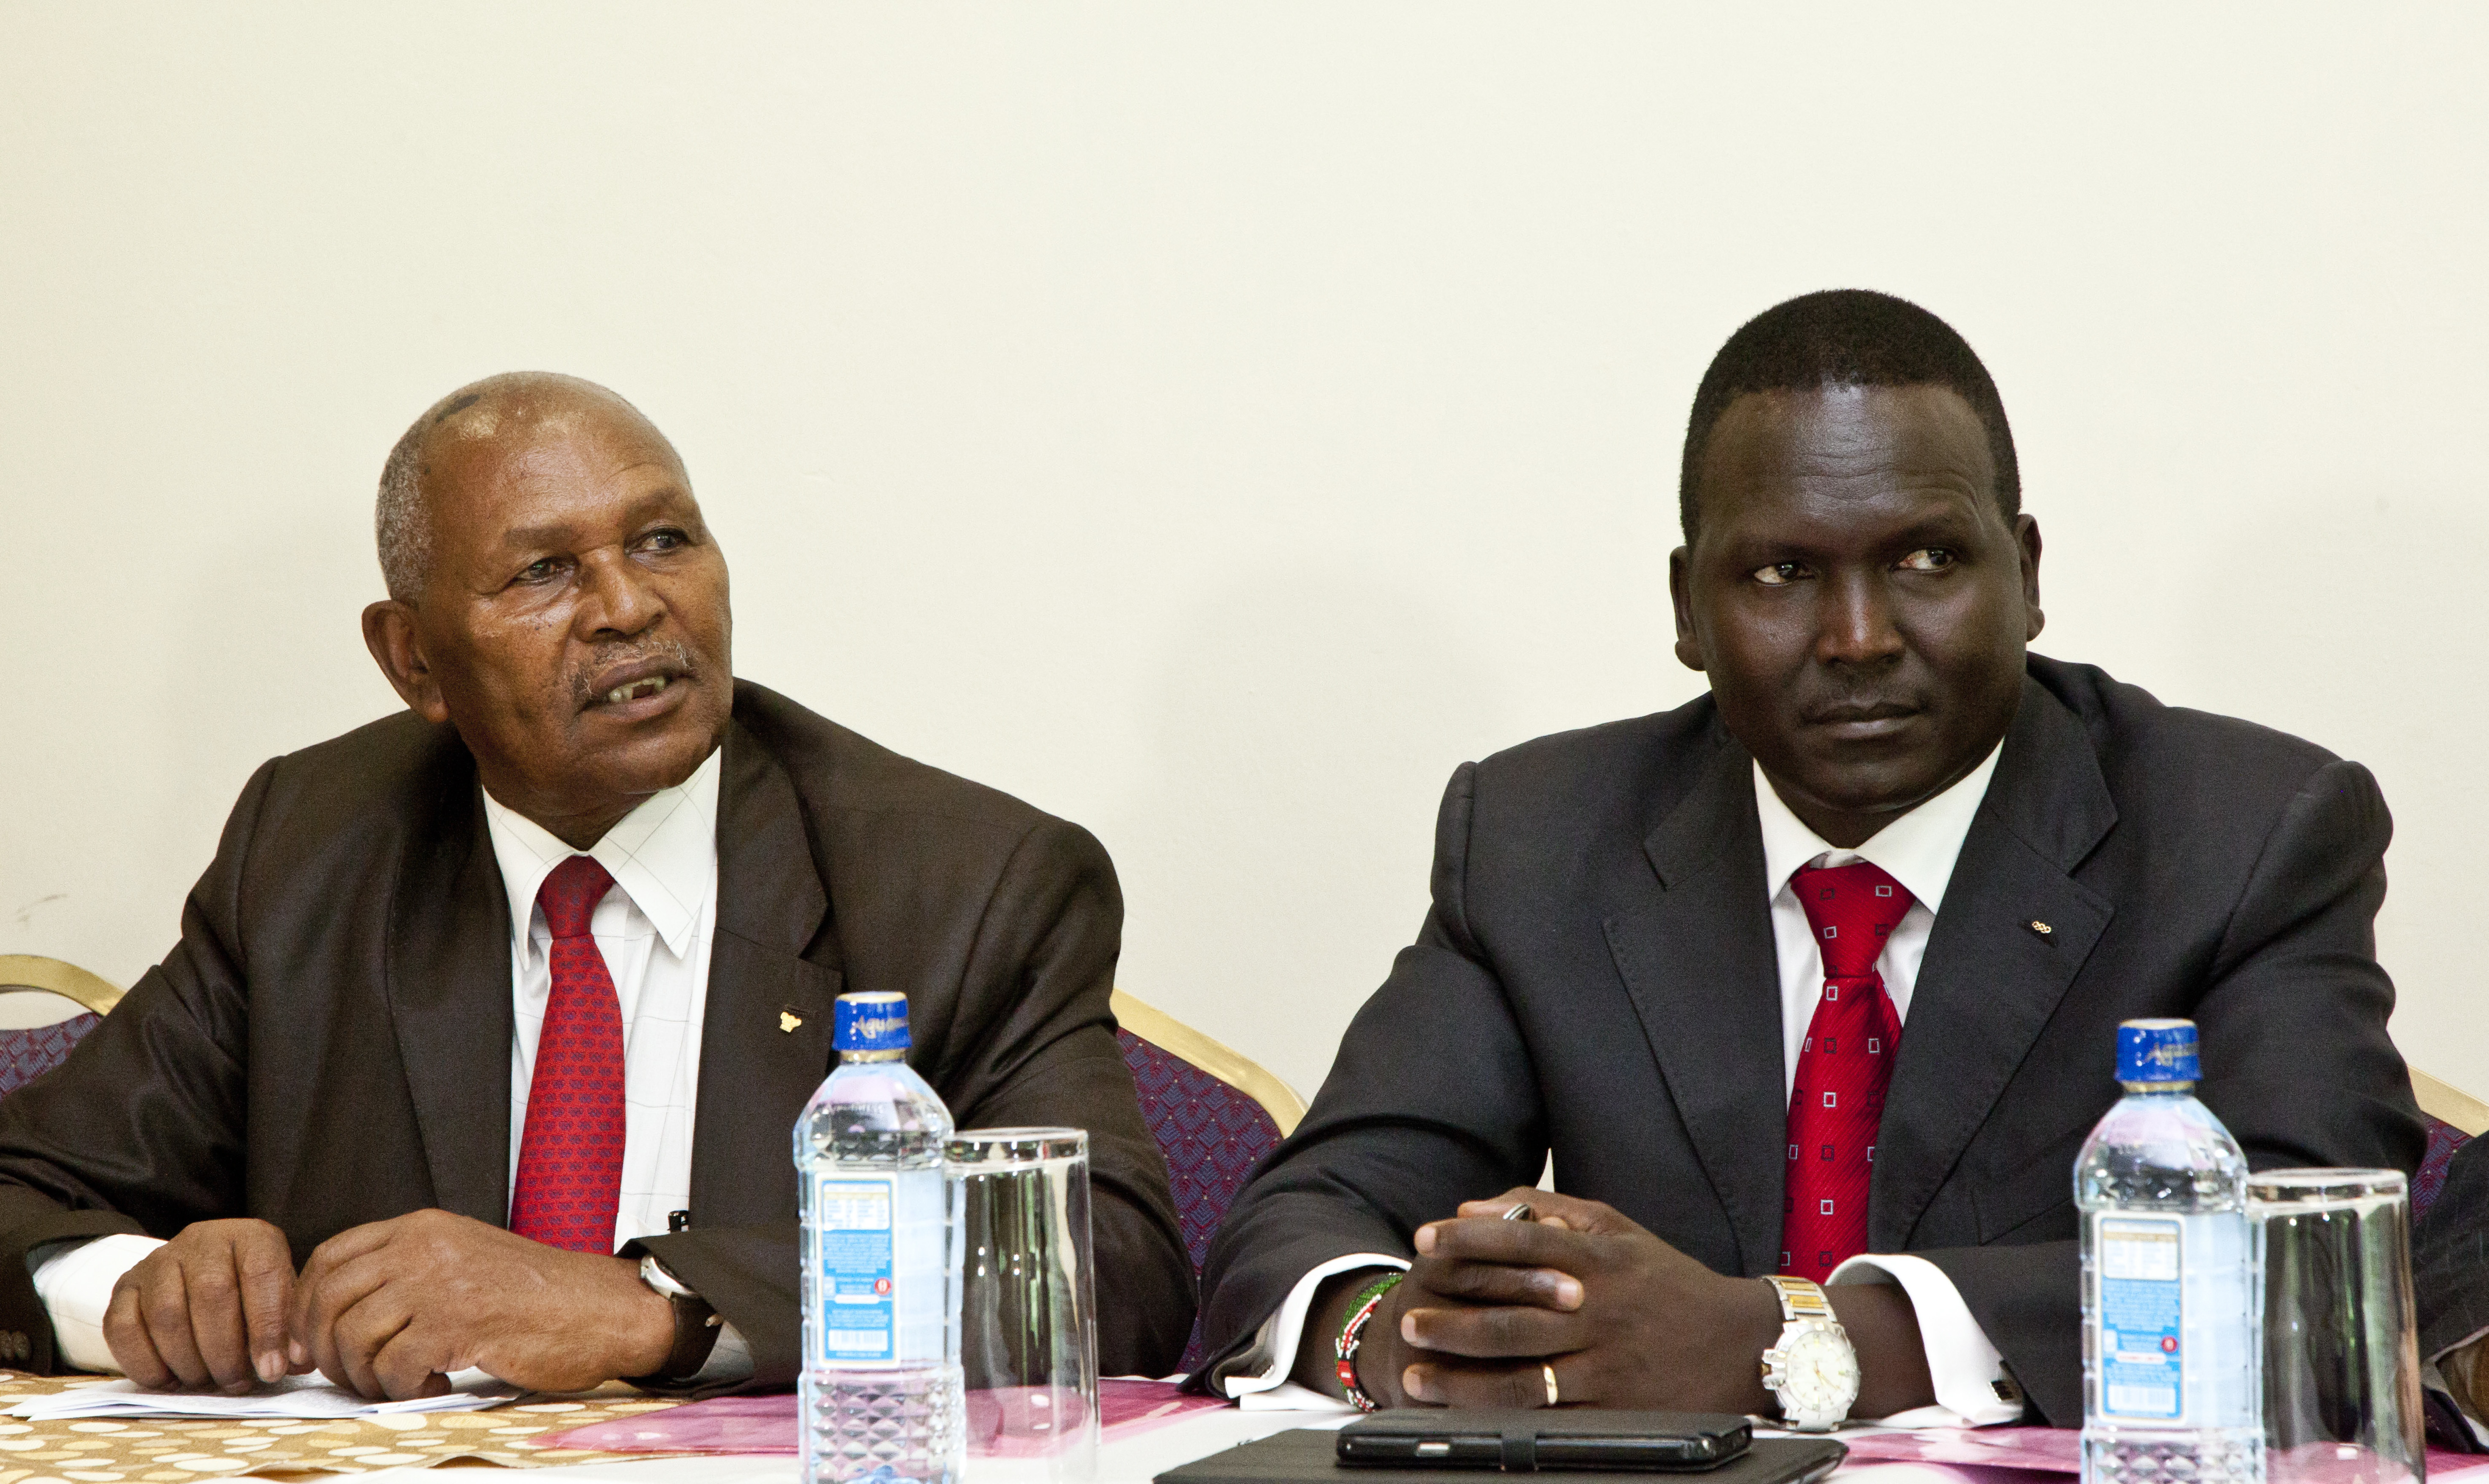 Incumbent head of the troubled National Olympic Committee of Kenya Kipchoge 'Kip' Keino, left, and candidate Paul Tergat, right, speak to the media on the day committee elections were supposed to take place in Nairobi, Kenya Friday, May 5, 2017. The Kenya